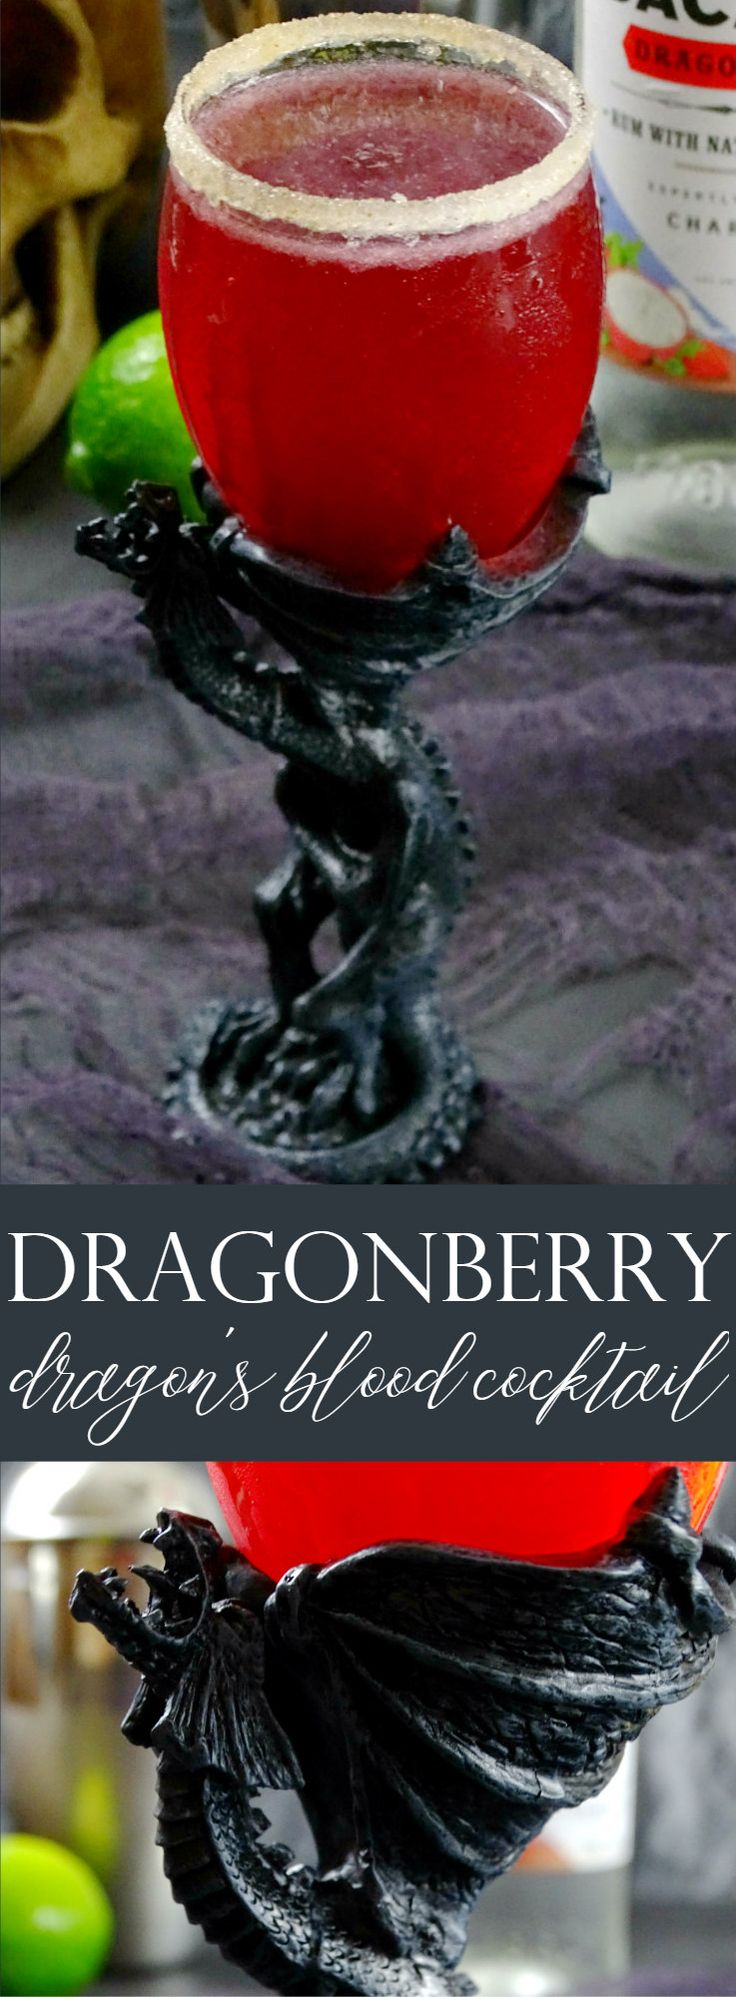 Slay this tart and fruity, slightly spicy Dragon Berry Dragon's Blood Cocktail on Halloween or during your next Harry Potter or Game of Thrones marathon!